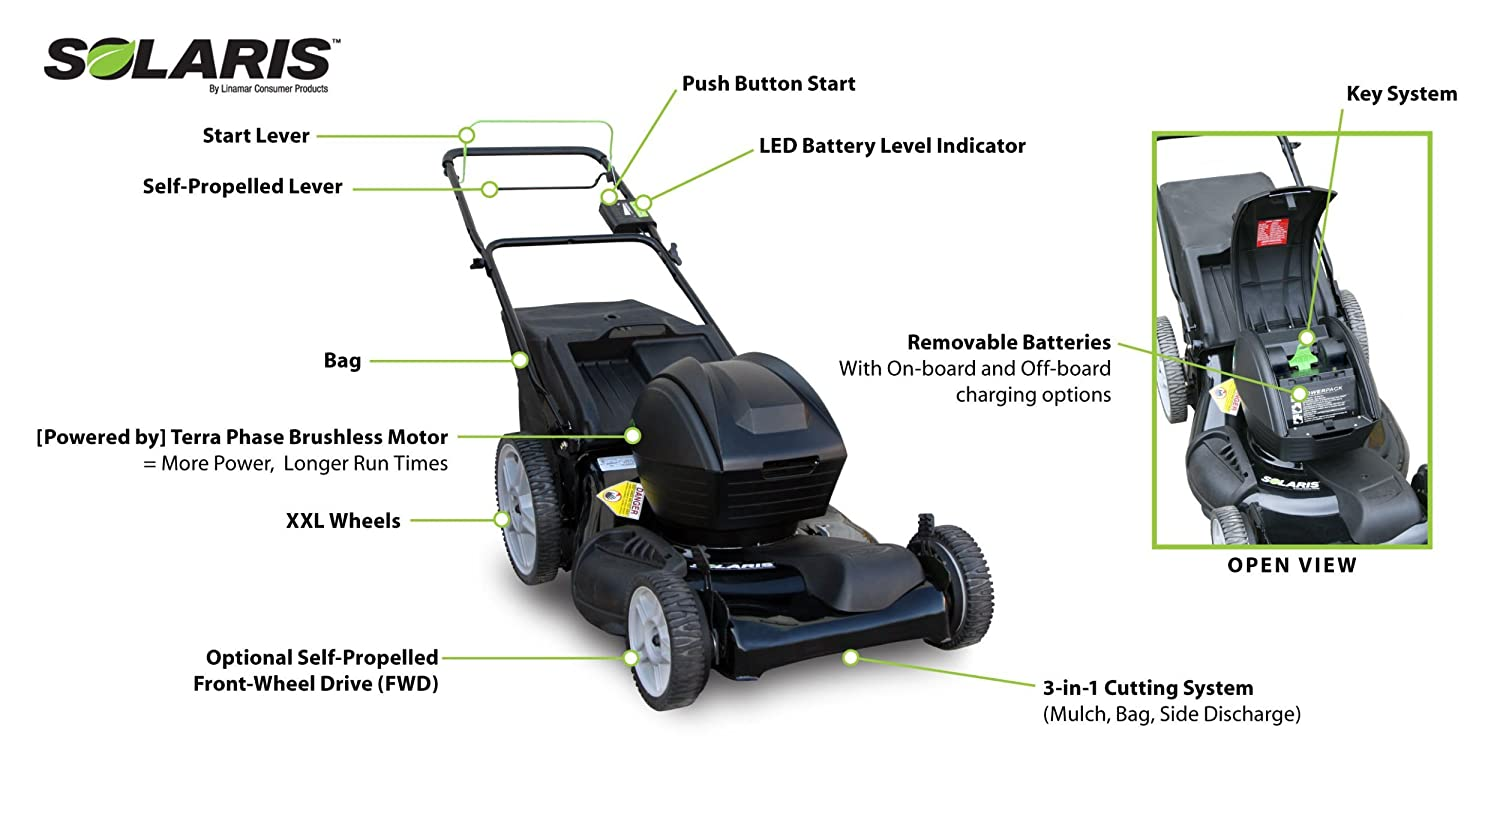 Solaris Sp21hb 21 Inch 24 Volt Cordless Self Propelled Husqvarna Riding Lawn Mower Wiring Diagram Fwd Bag Mulch Side Discharge Discontinued By Manufacturer Walk